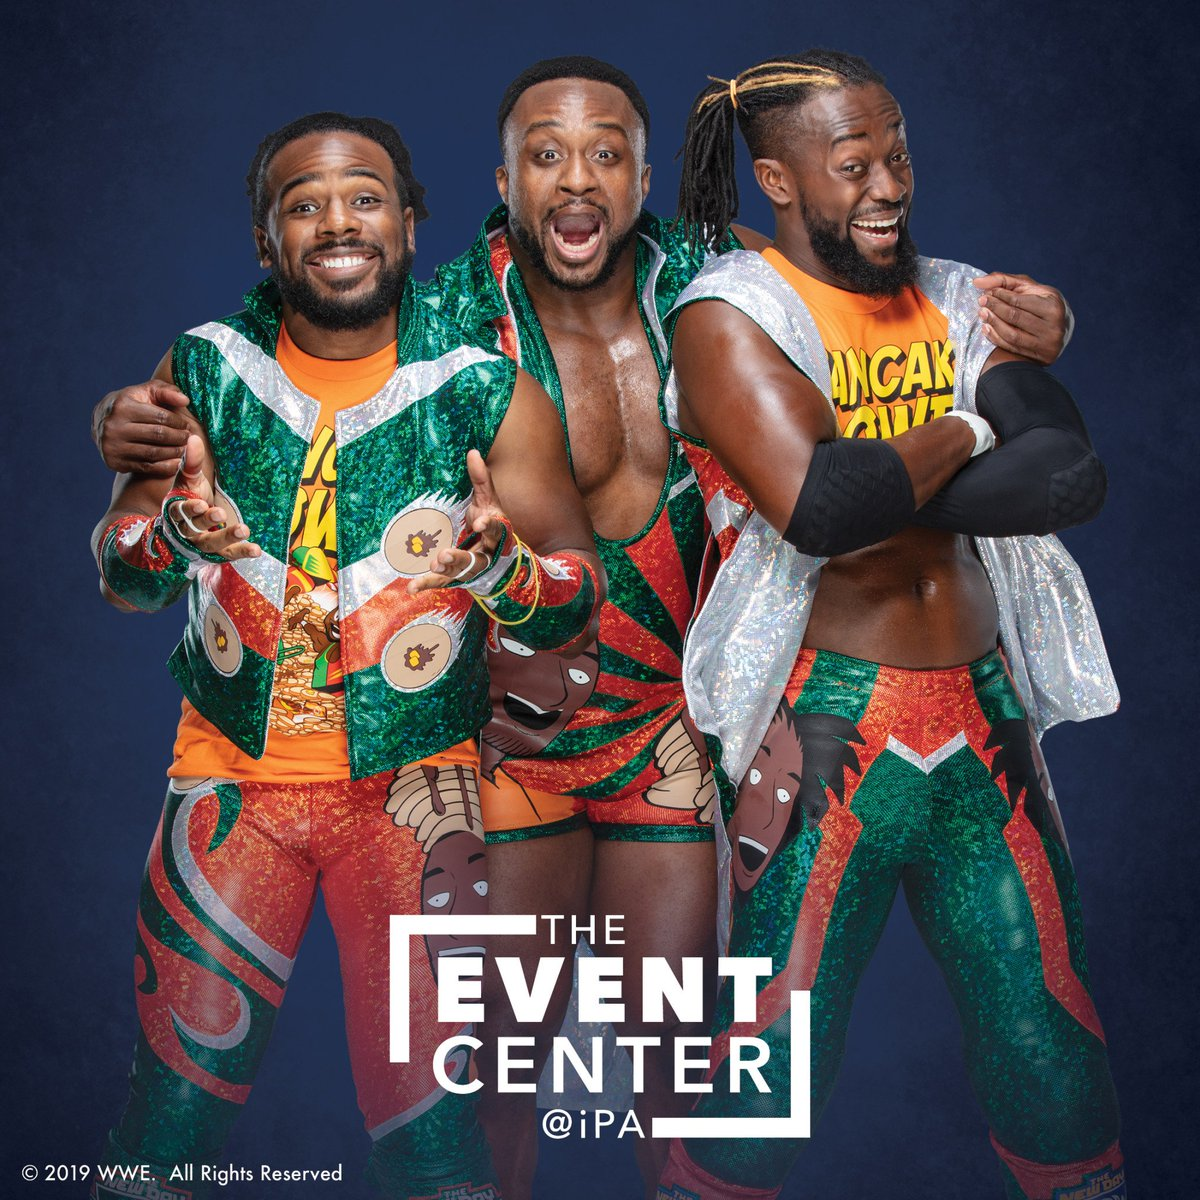 Pancake buffet at Game Time Bar & Grill & @WWE's The New Day? Sounds like a perfect Sunday. 💪@TrueKofi, @WWEBigE, and @XavierWoodsPhD will be @iPlay_America on September 29th. Plus, they'll be making a SPECIAL appearance in the VIP pancake breakfast! 🥞http://bit.ly/30tZyxA